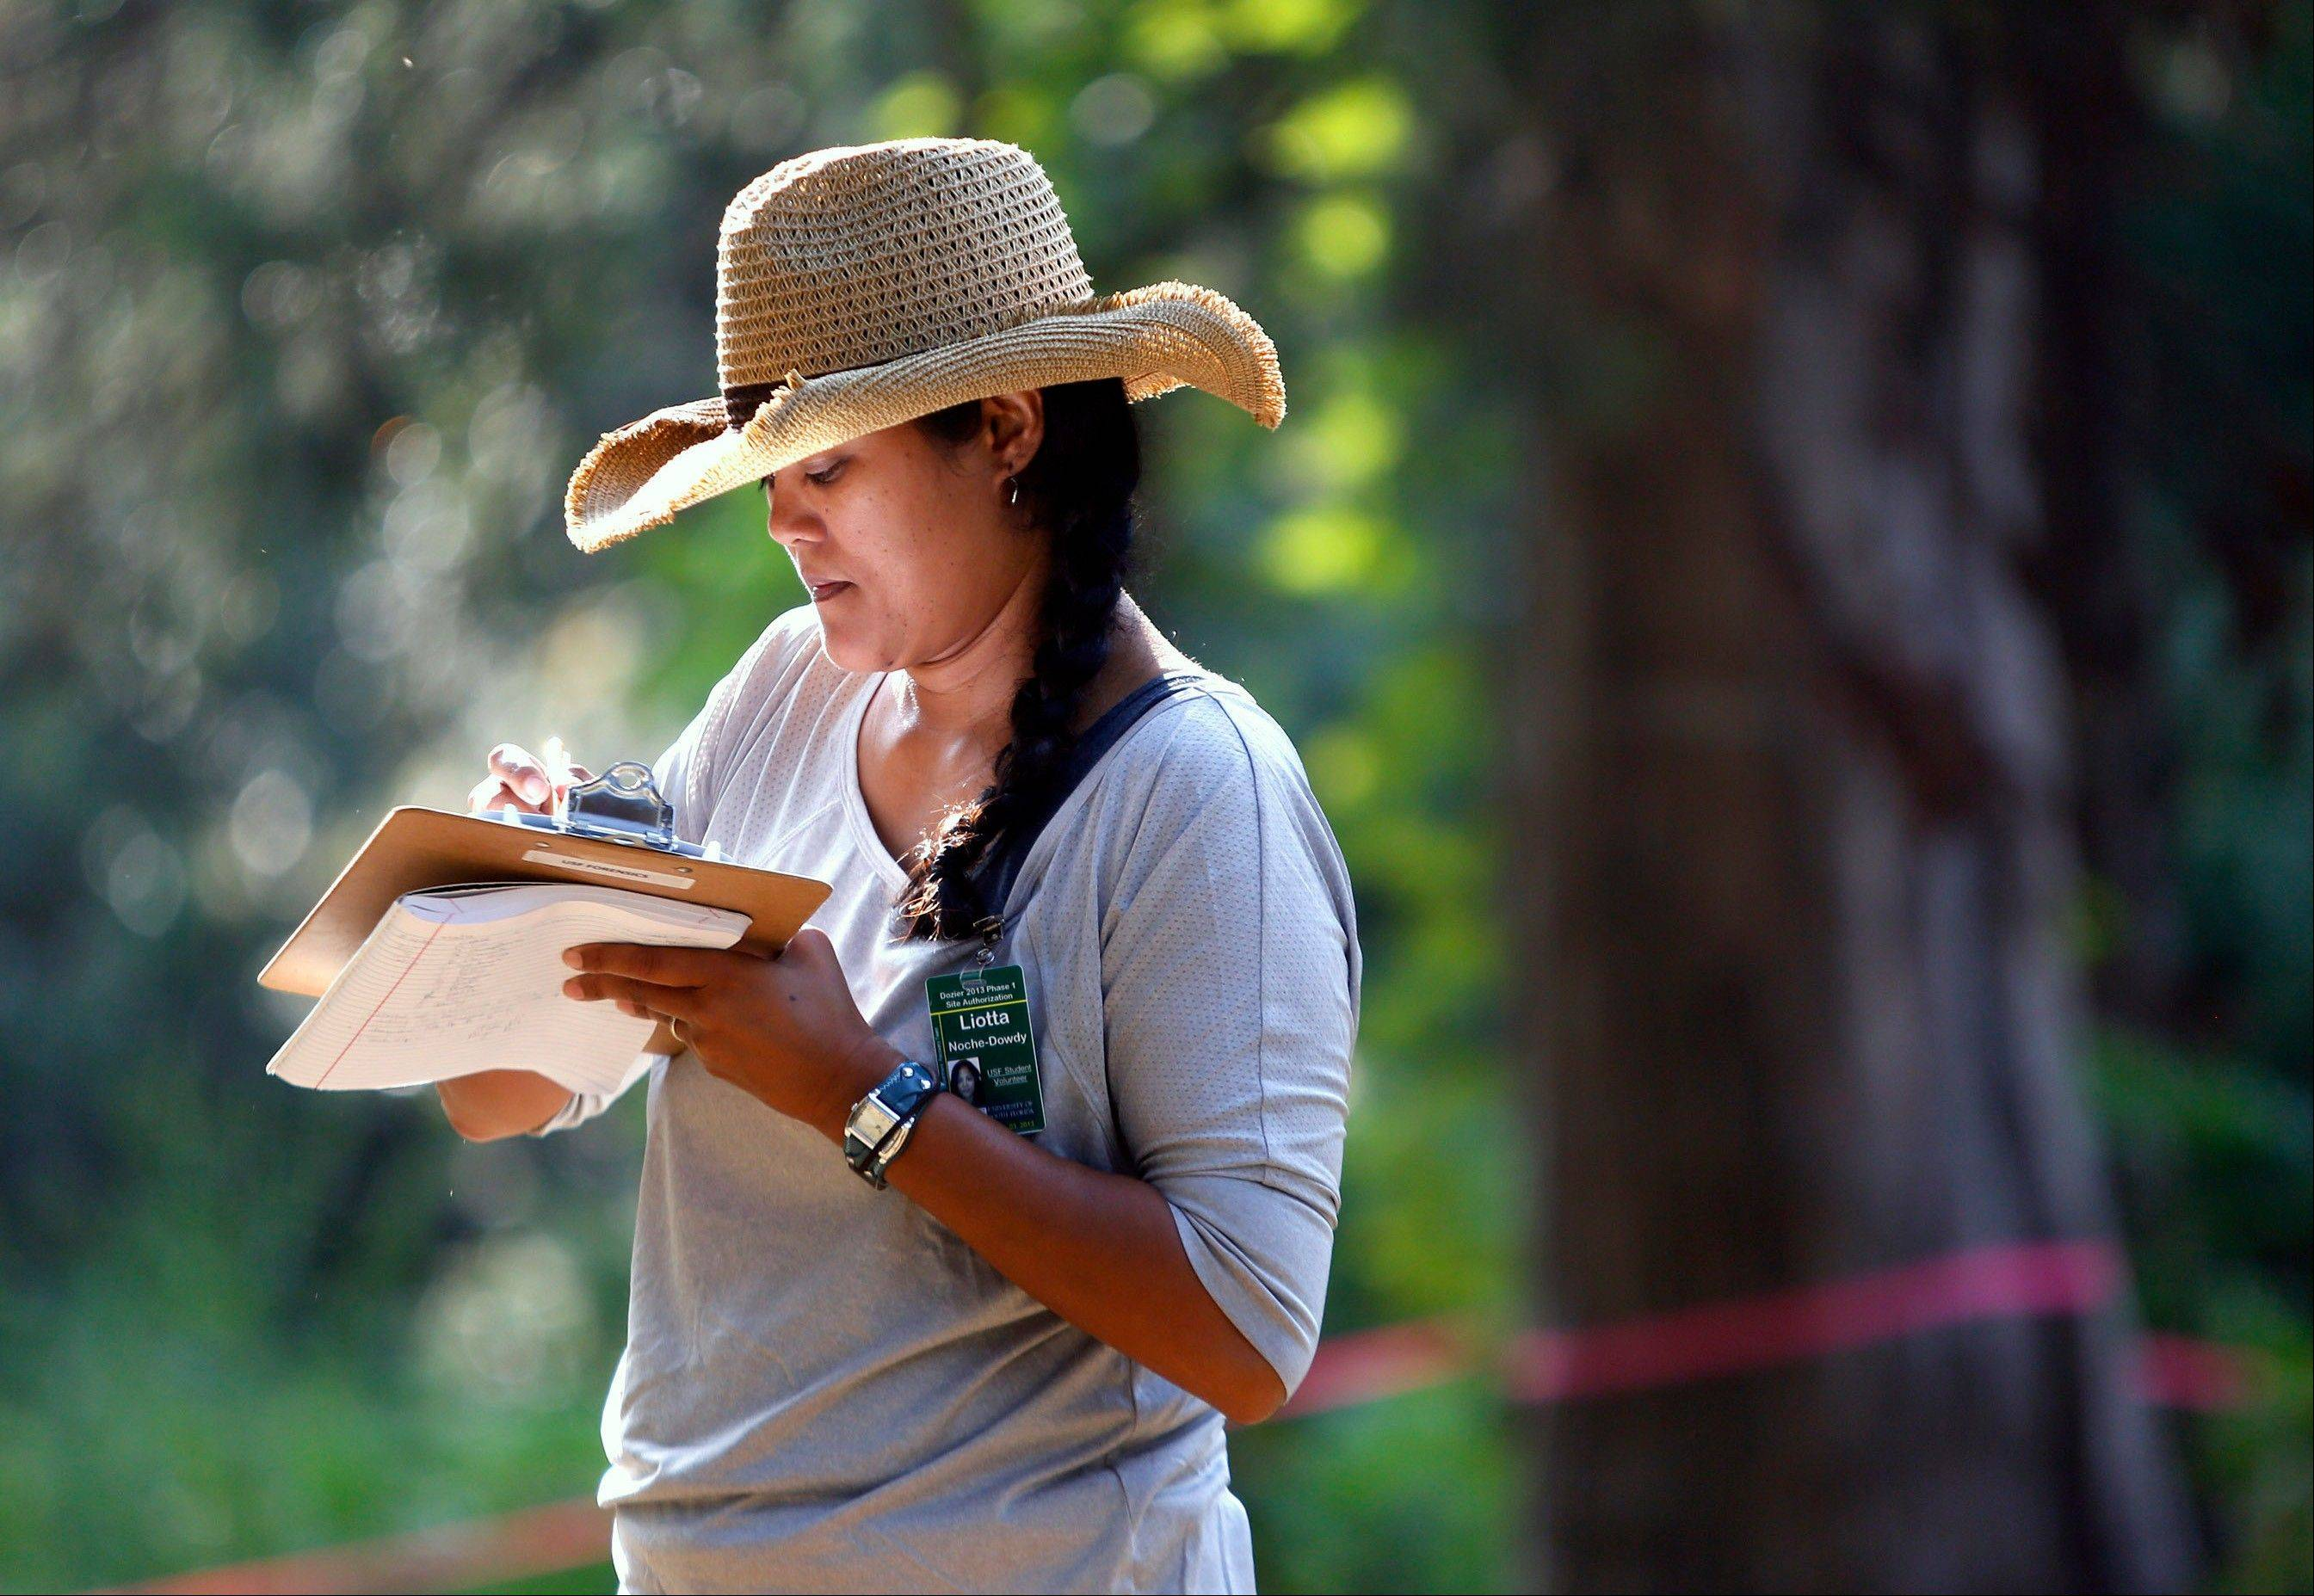 Student volunteer Liotta Noche-Dowdy makes notes as a team of anthropologists from the University of South Florida begin exhuming suspected graves.